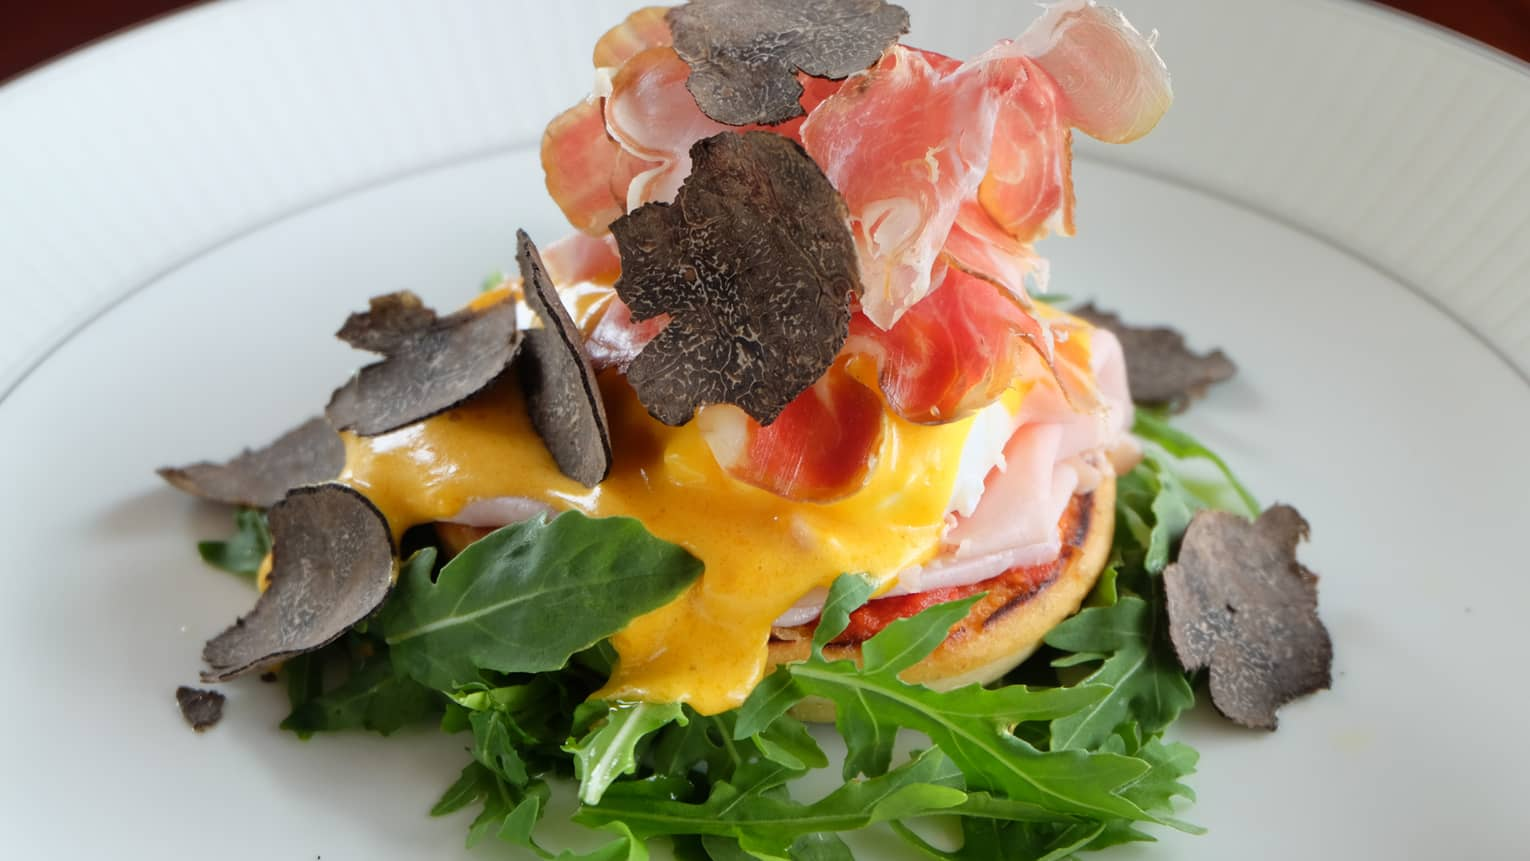 Close-up of eggs Benedict dish topped with yellow sauce, cured meats, crispy roots, lettuce